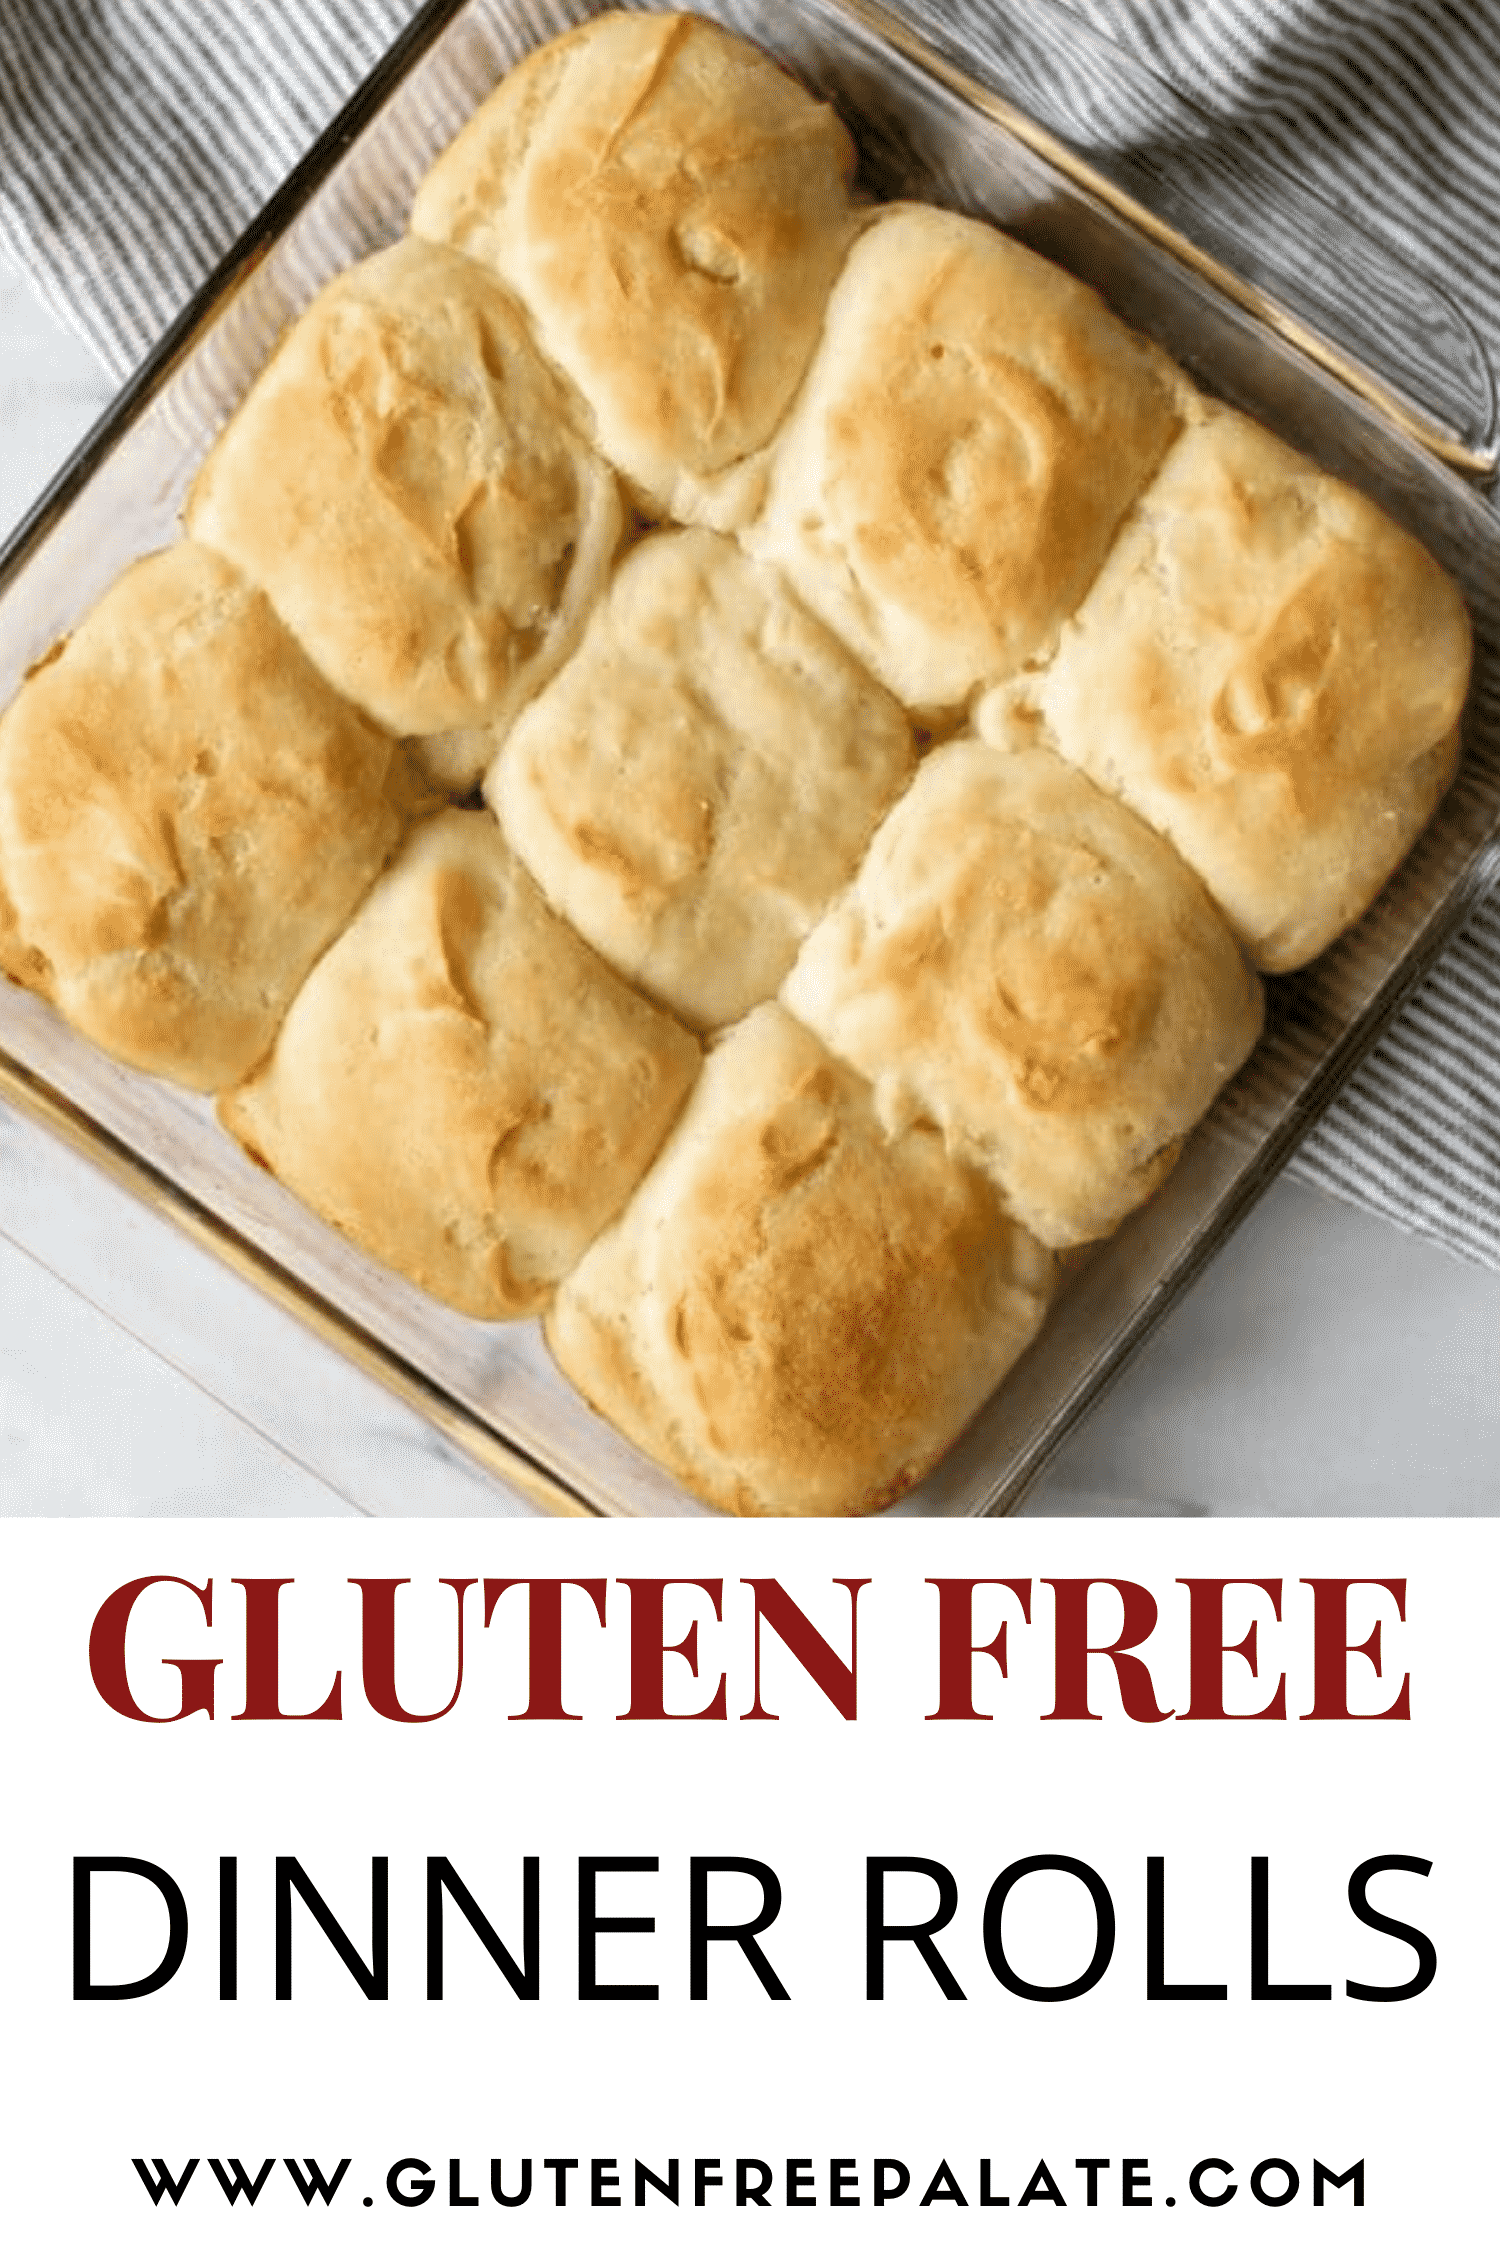 a square pan of 9 gluten free dinner rolls